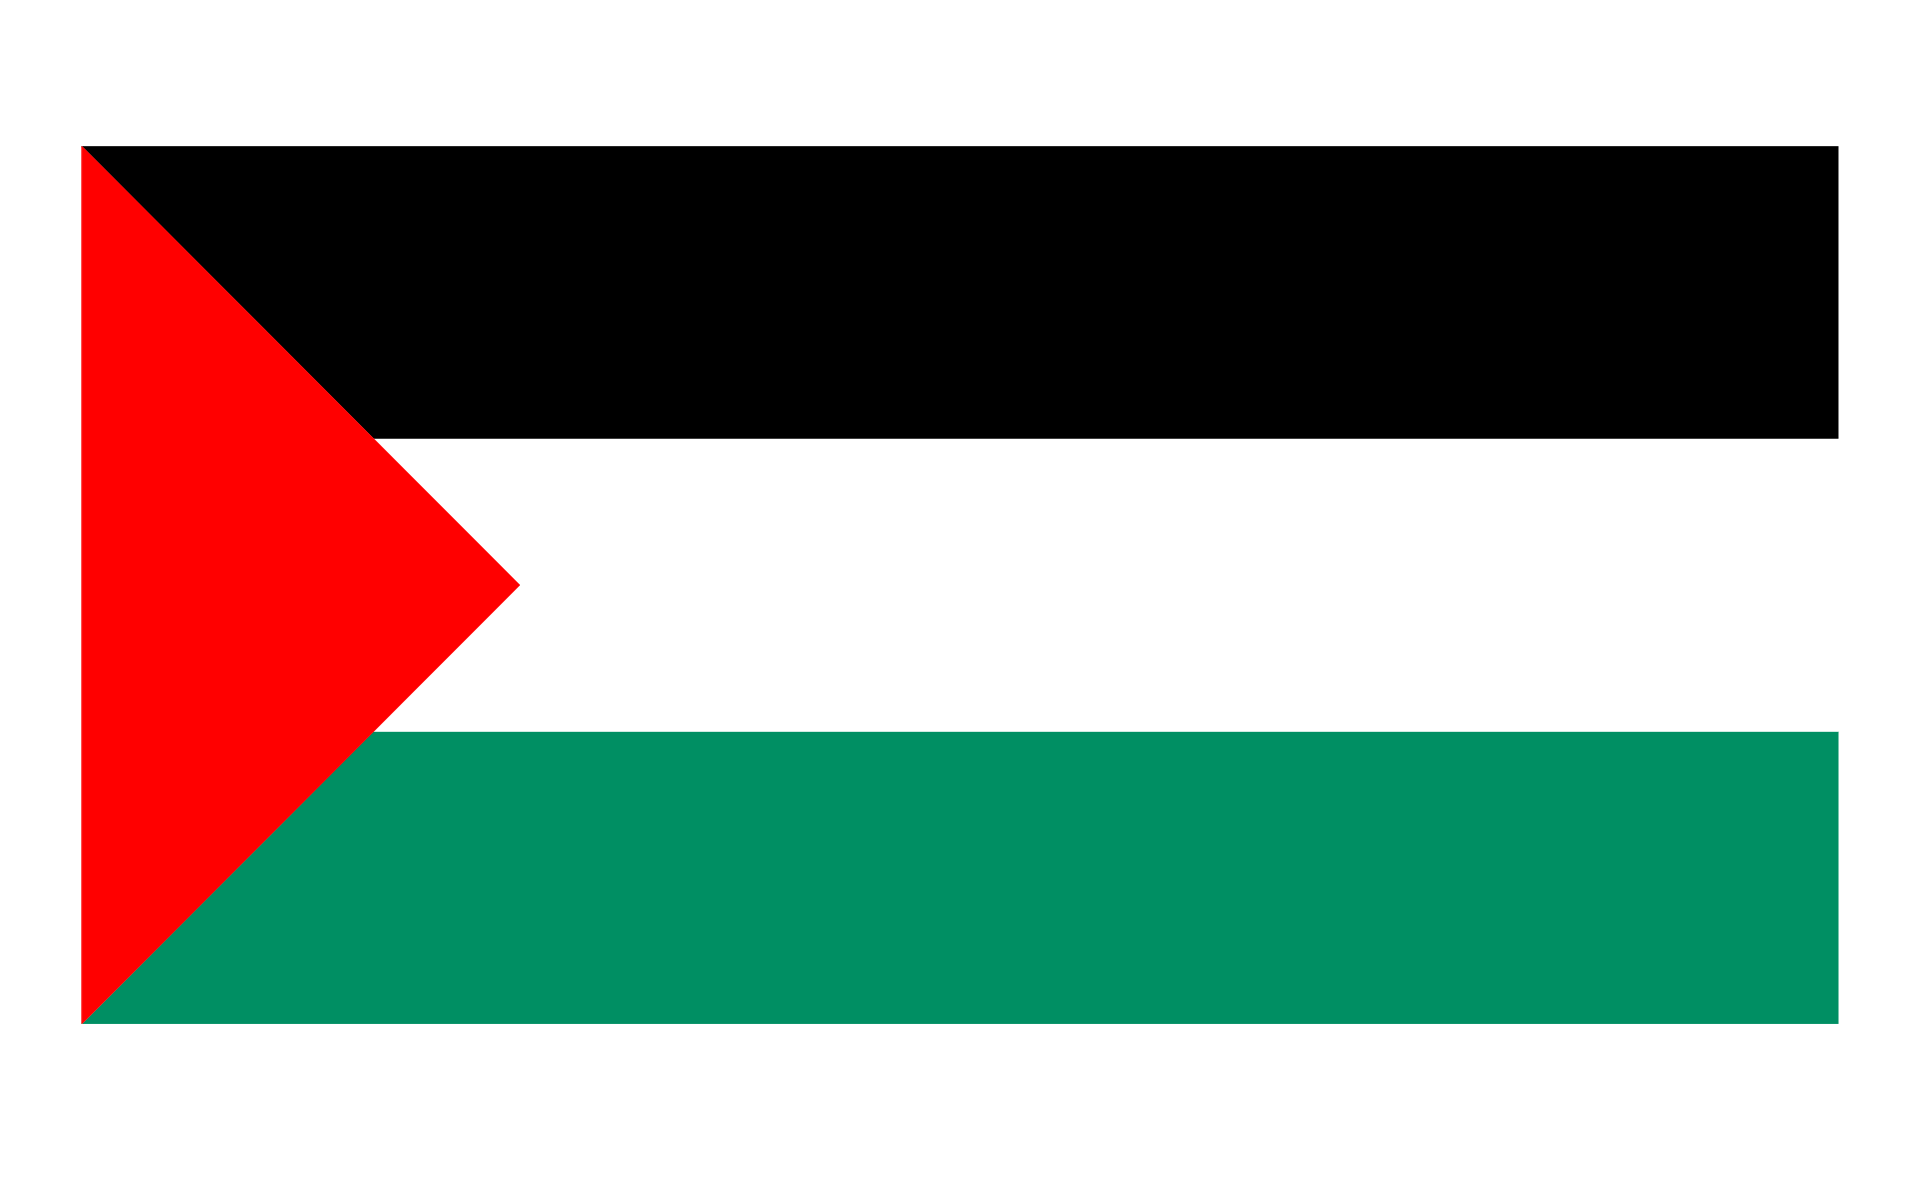 Countries Flags HD Wallpapers [1920x1200] Palestines flag wallpaper 1920x1200